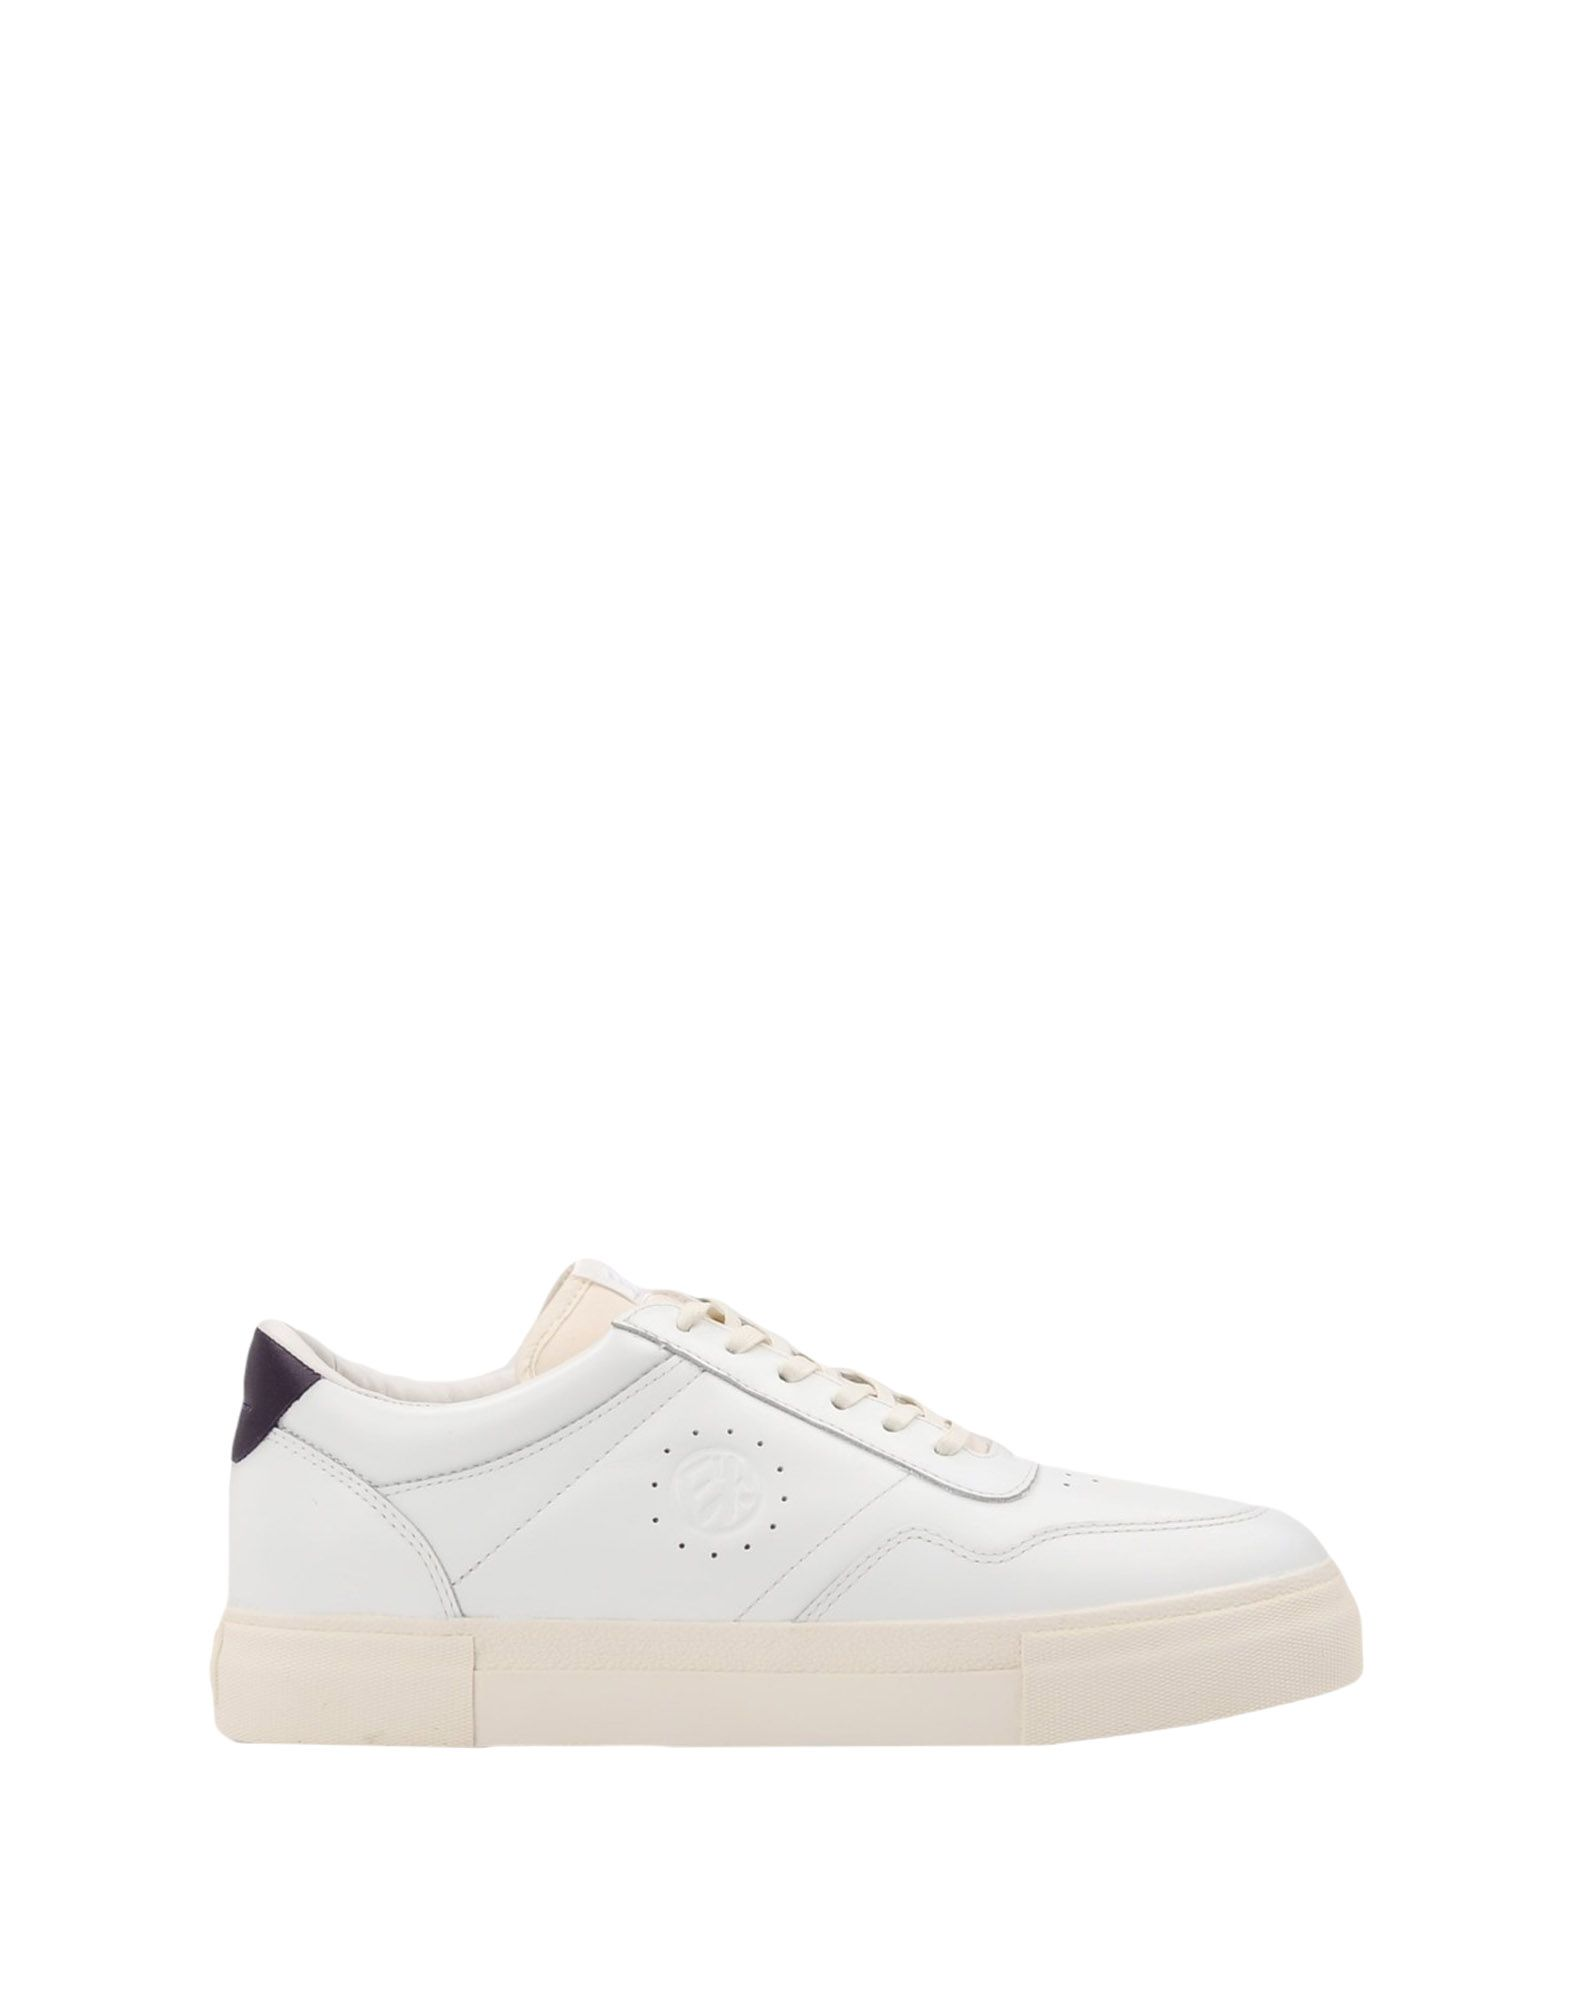 Eytys Sneakers - Women Eytys Eytys Eytys Sneakers online on  Canada - 11361235BD 8ea976